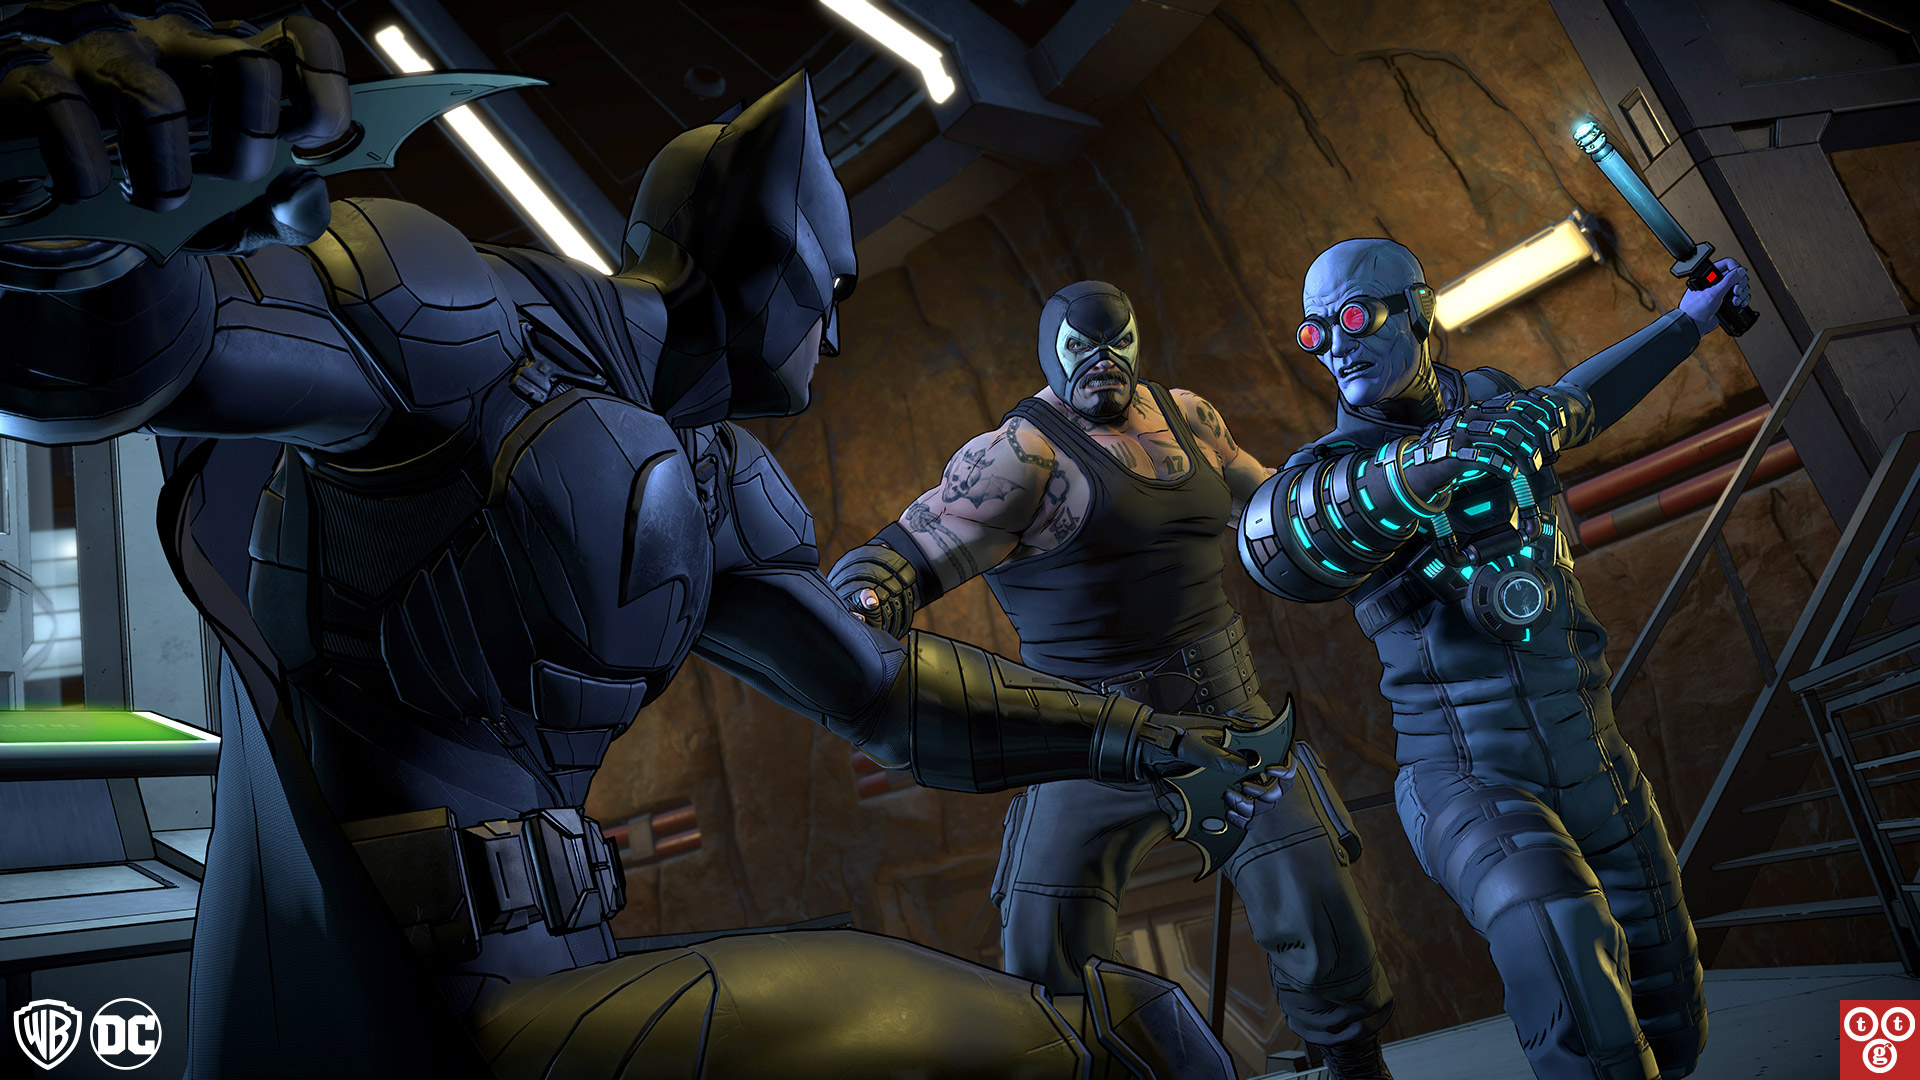 Batman: The Enemy Within - The Telltale Series Wallpaper in 1920x1080